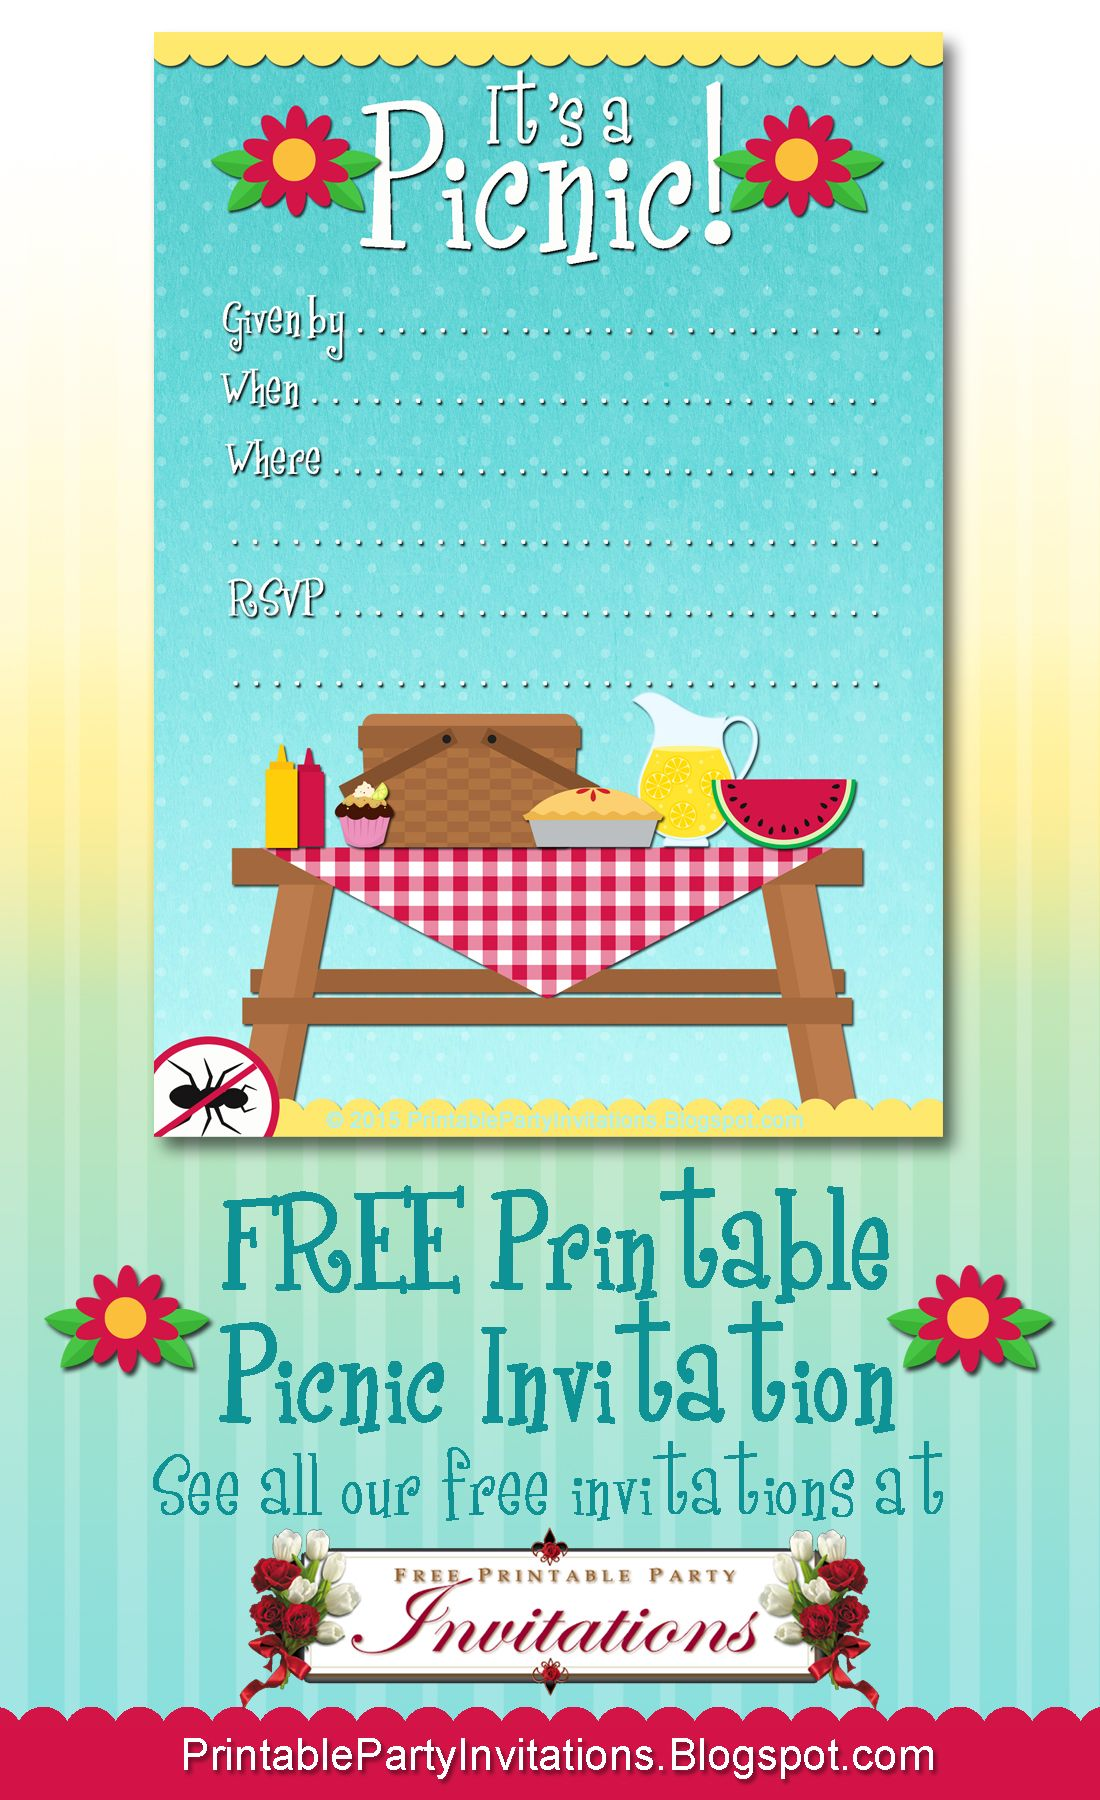 FREE Printable Picnic Invitation | banderines | Pinterest | Geburtstage